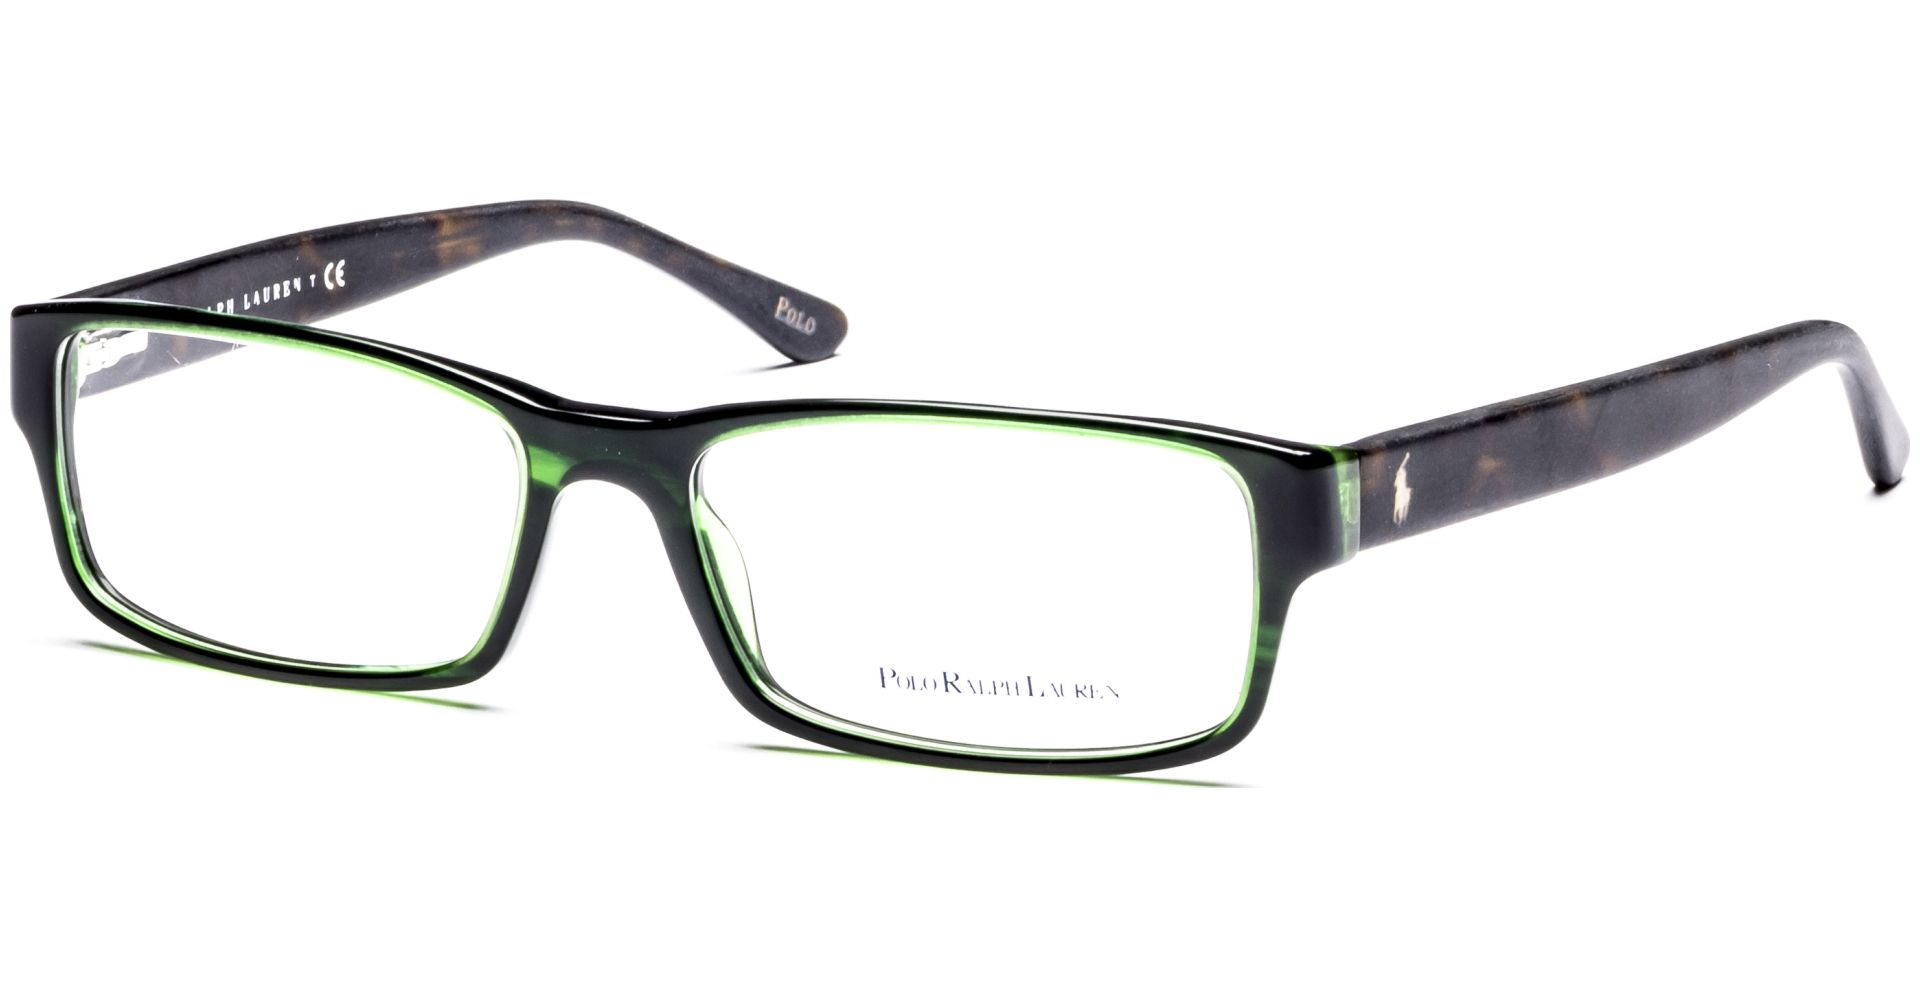 Polo - Ralph Lauren - PH2065 5125 5616 Green - von Lensbest